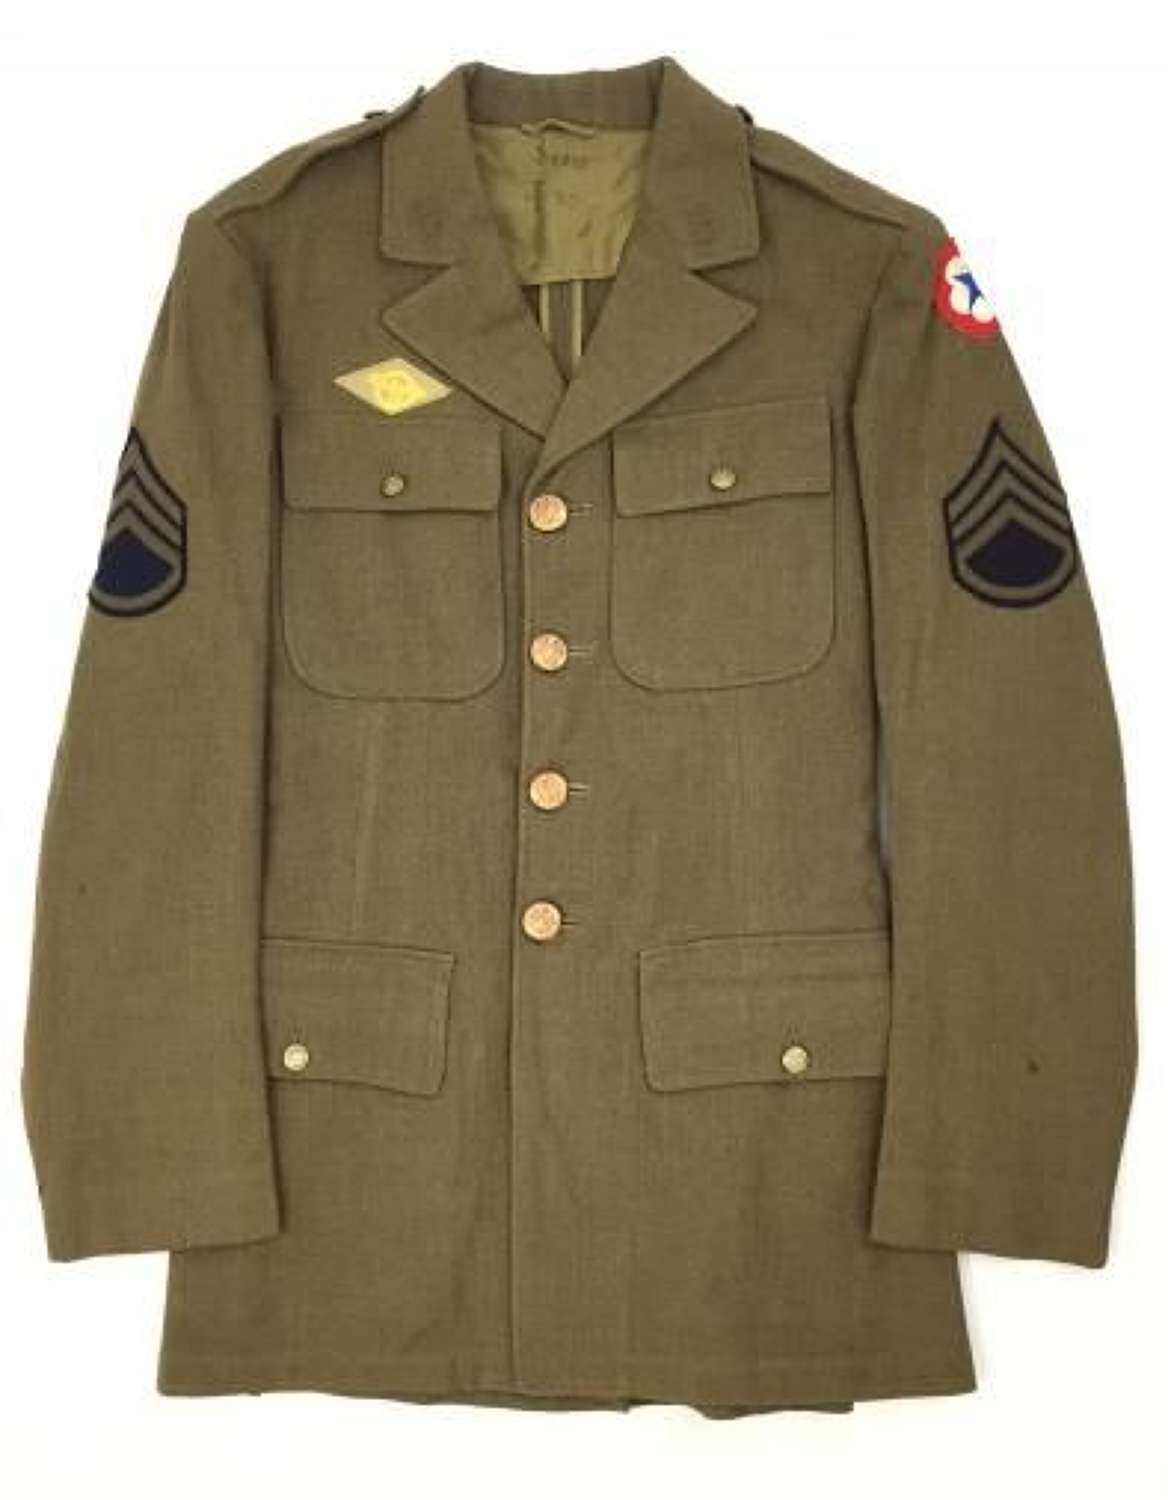 Original 1940 Dated US Enlisted Men's Tunic - Size 36L